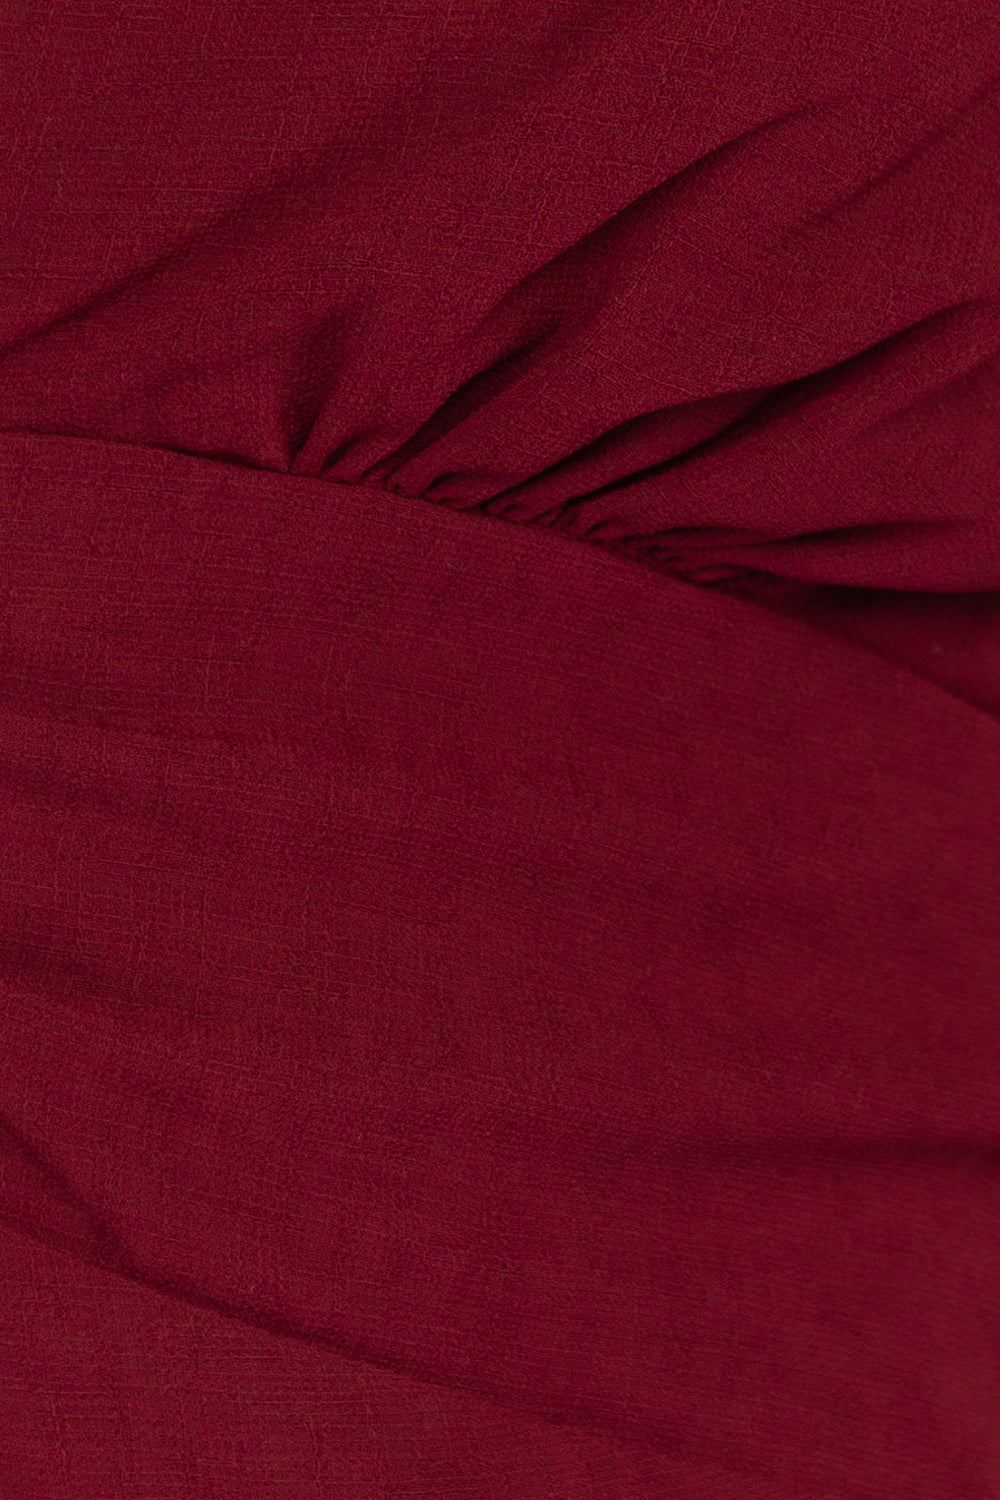 Scarlett Shirring Detail Short Sleeve A Line Dress In Burgundy Siin Bees